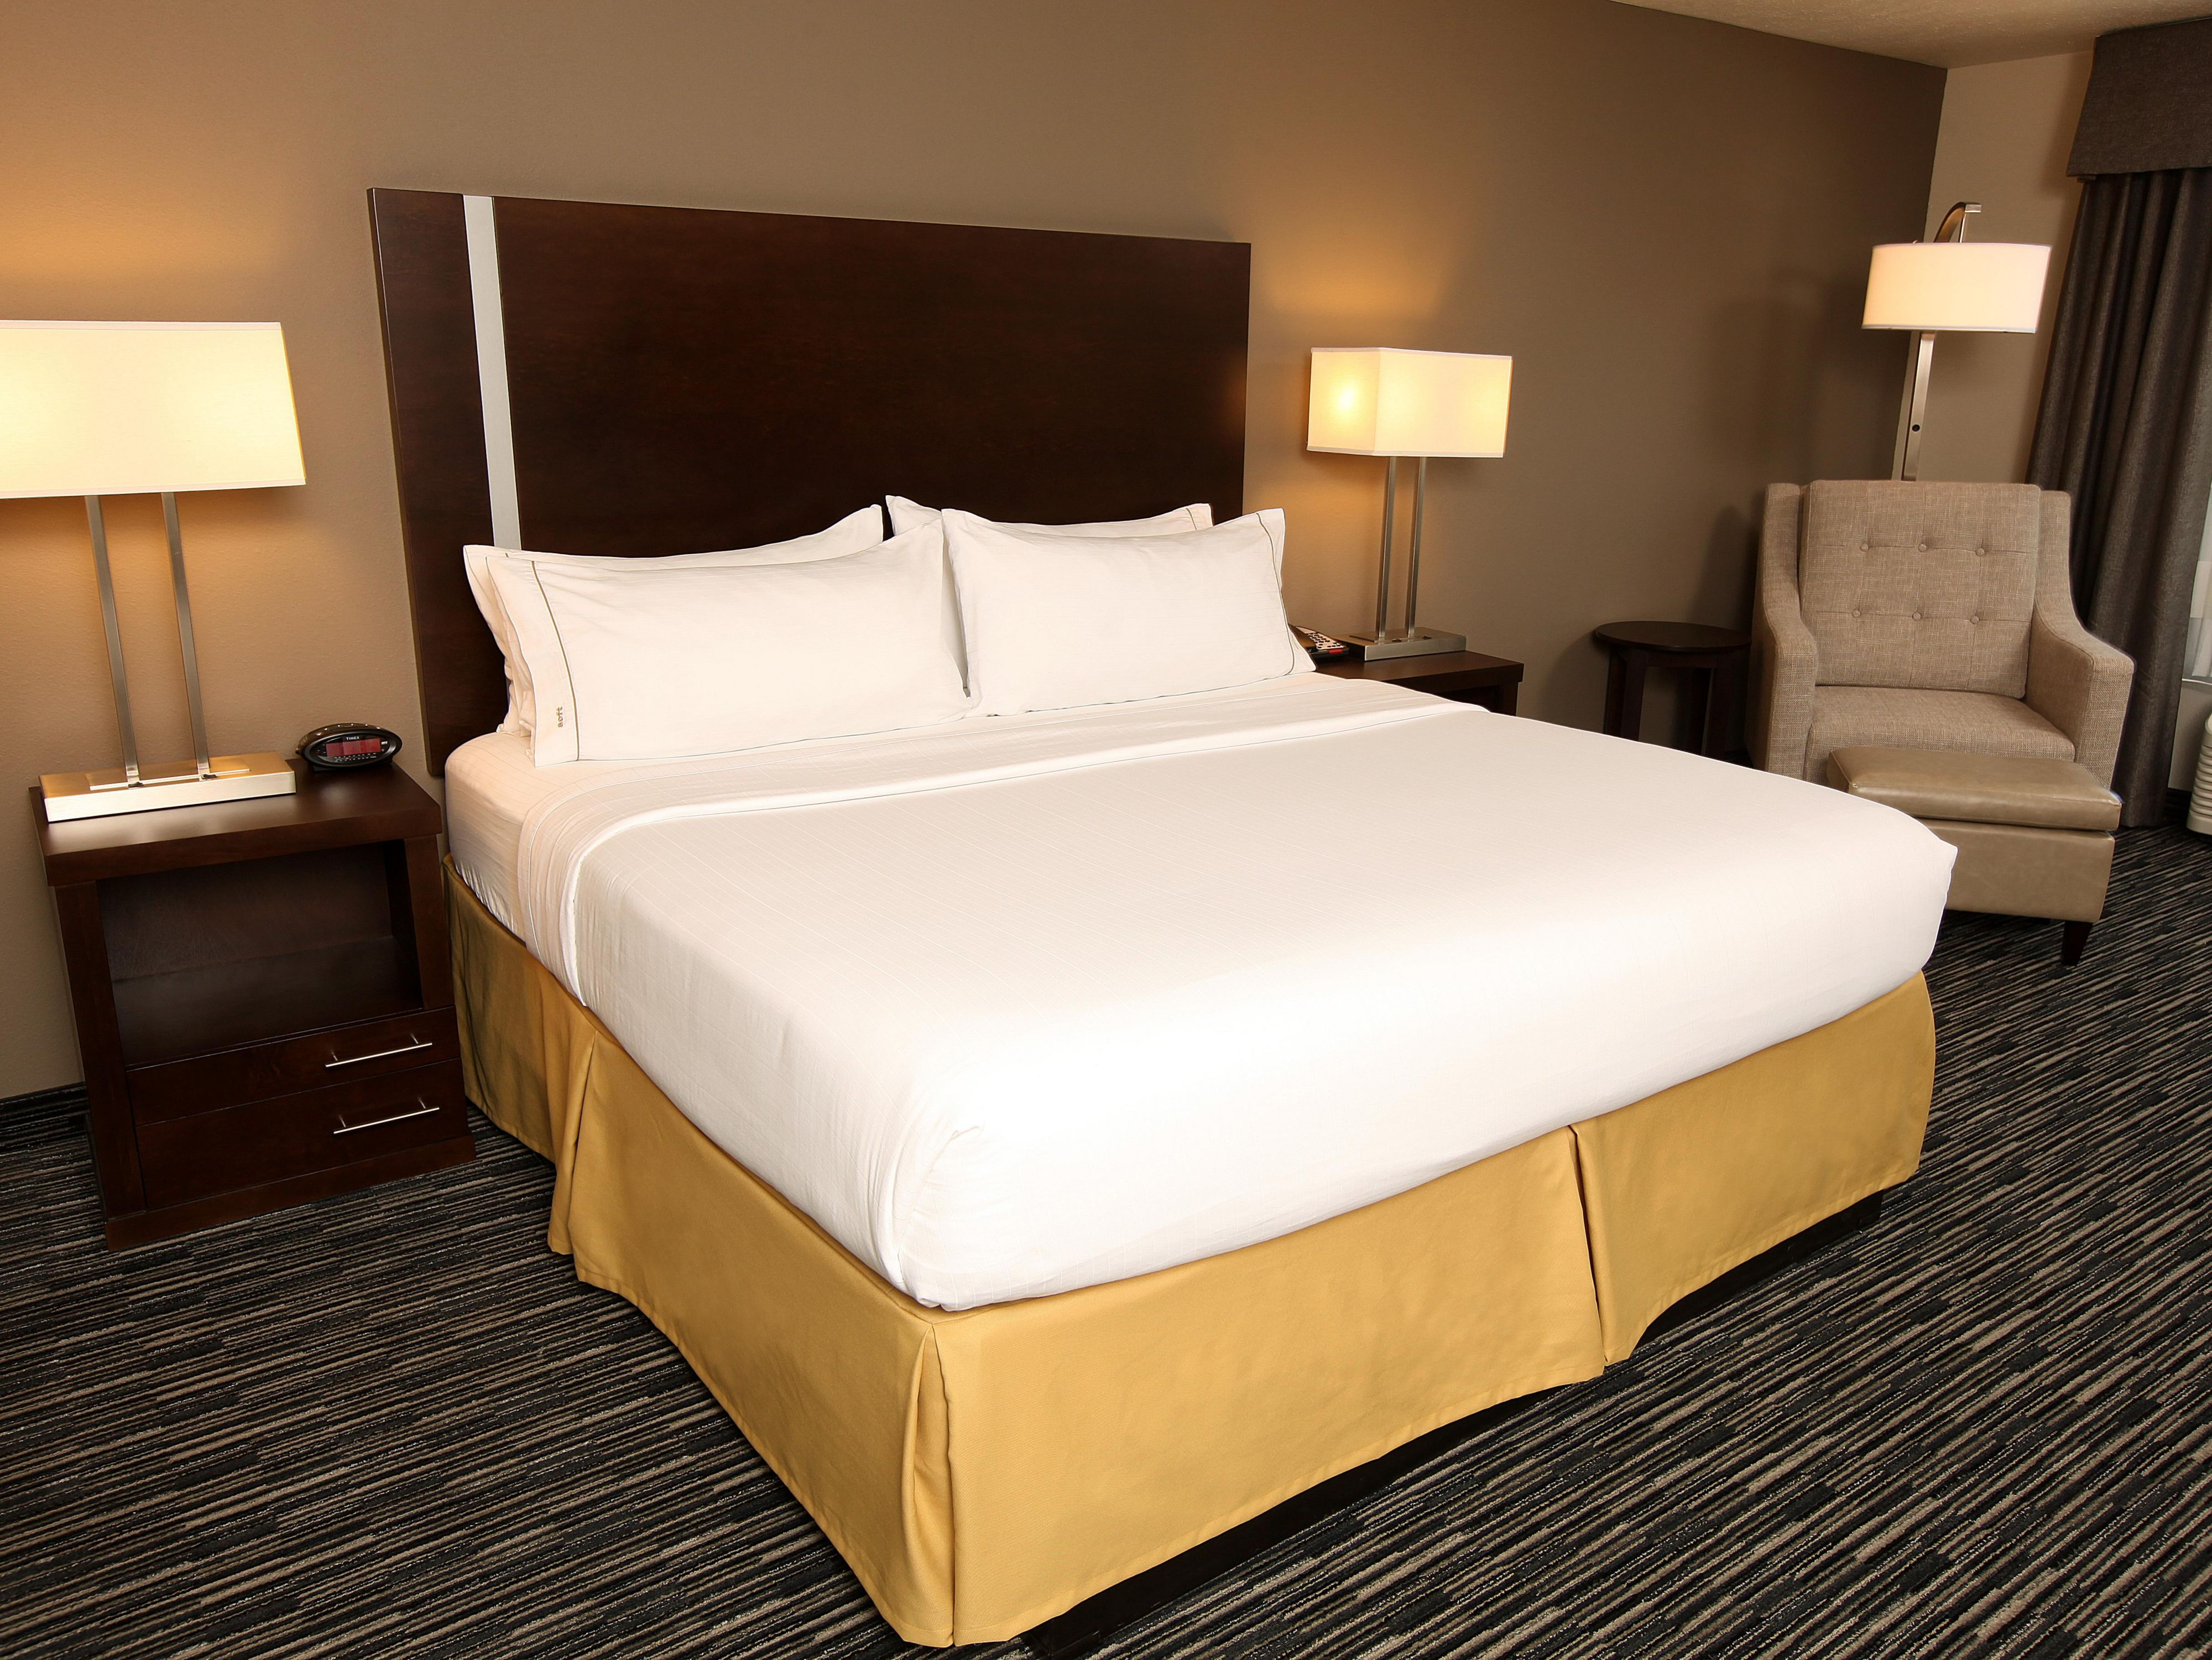 Comfortable king size bed and well-lit soft seating area.